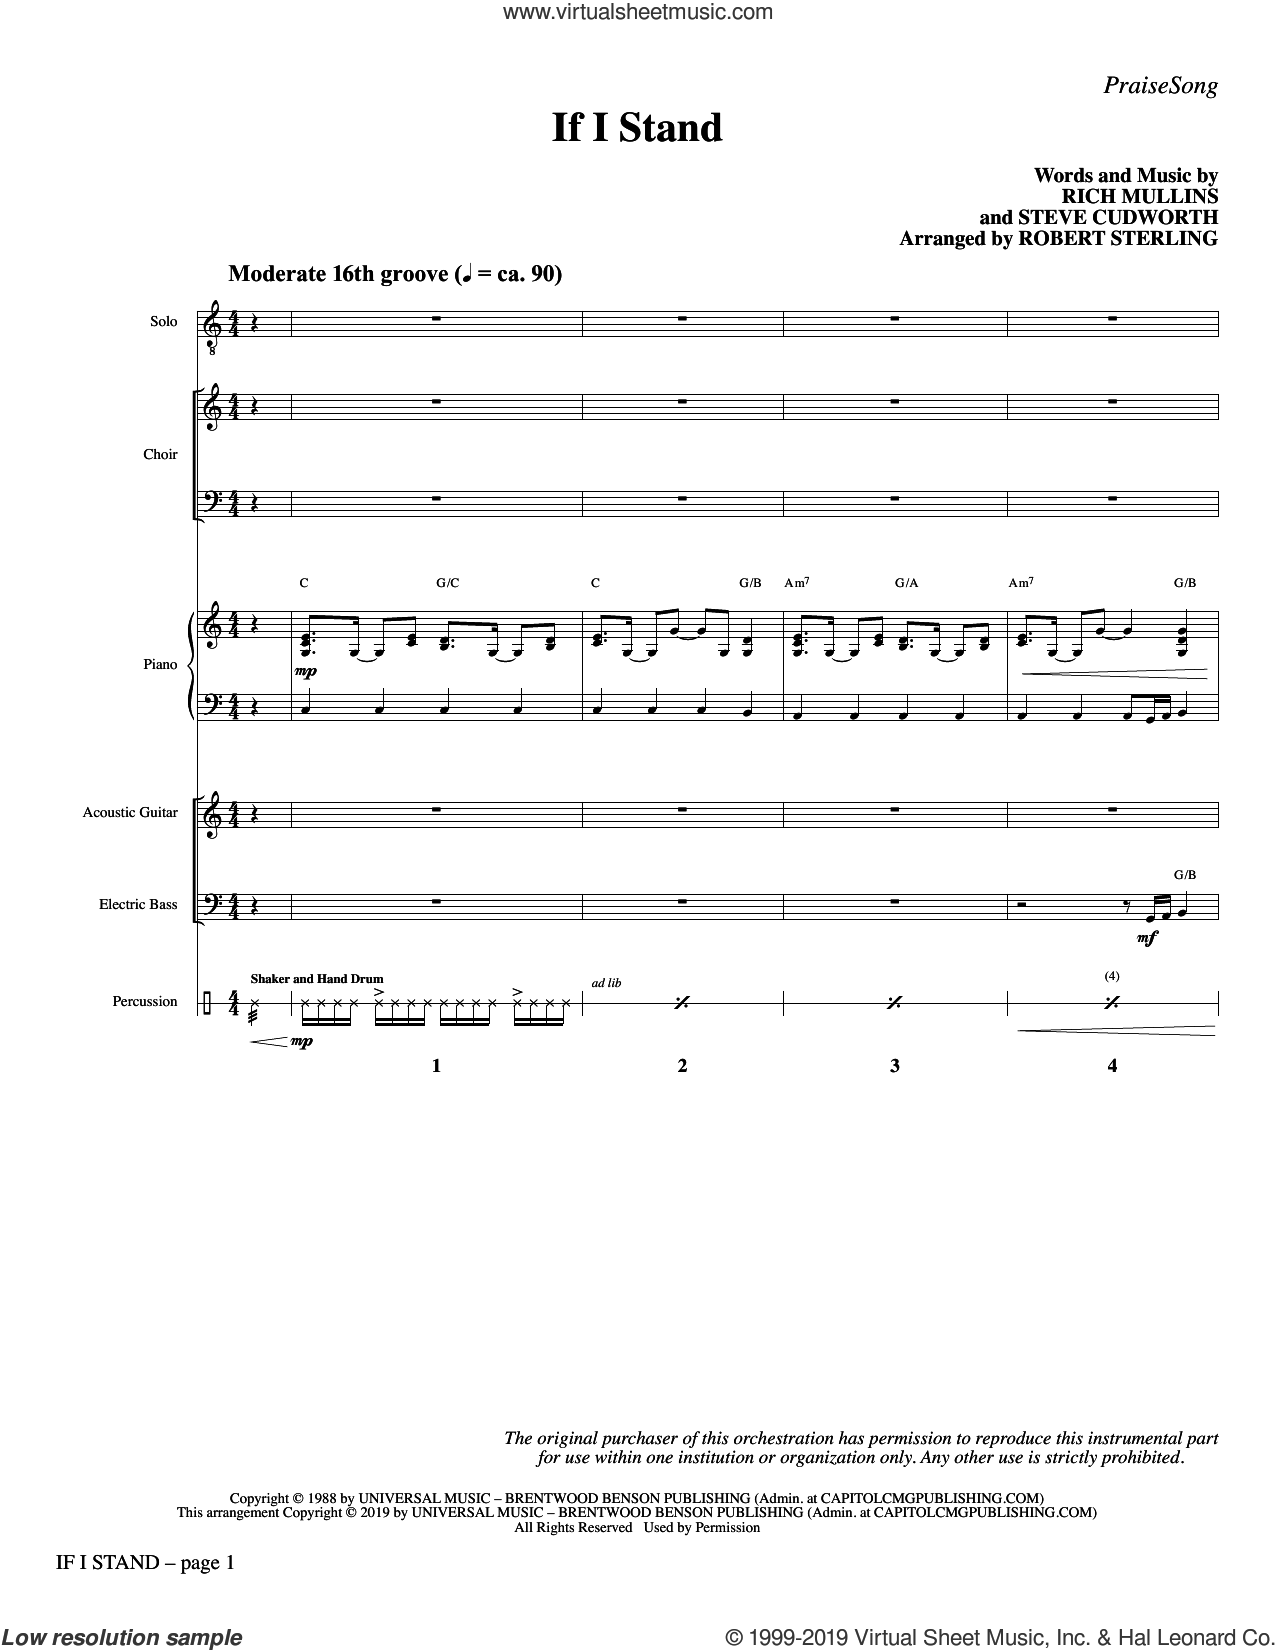 If I Stand (arr. Robert Sterling) (COMPLETE) sheet music for orchestra/band by Rich Mullins & Steve Cudworth, Rich Mullins, Robert Sterling and Steve Cudworth, intermediate skill level